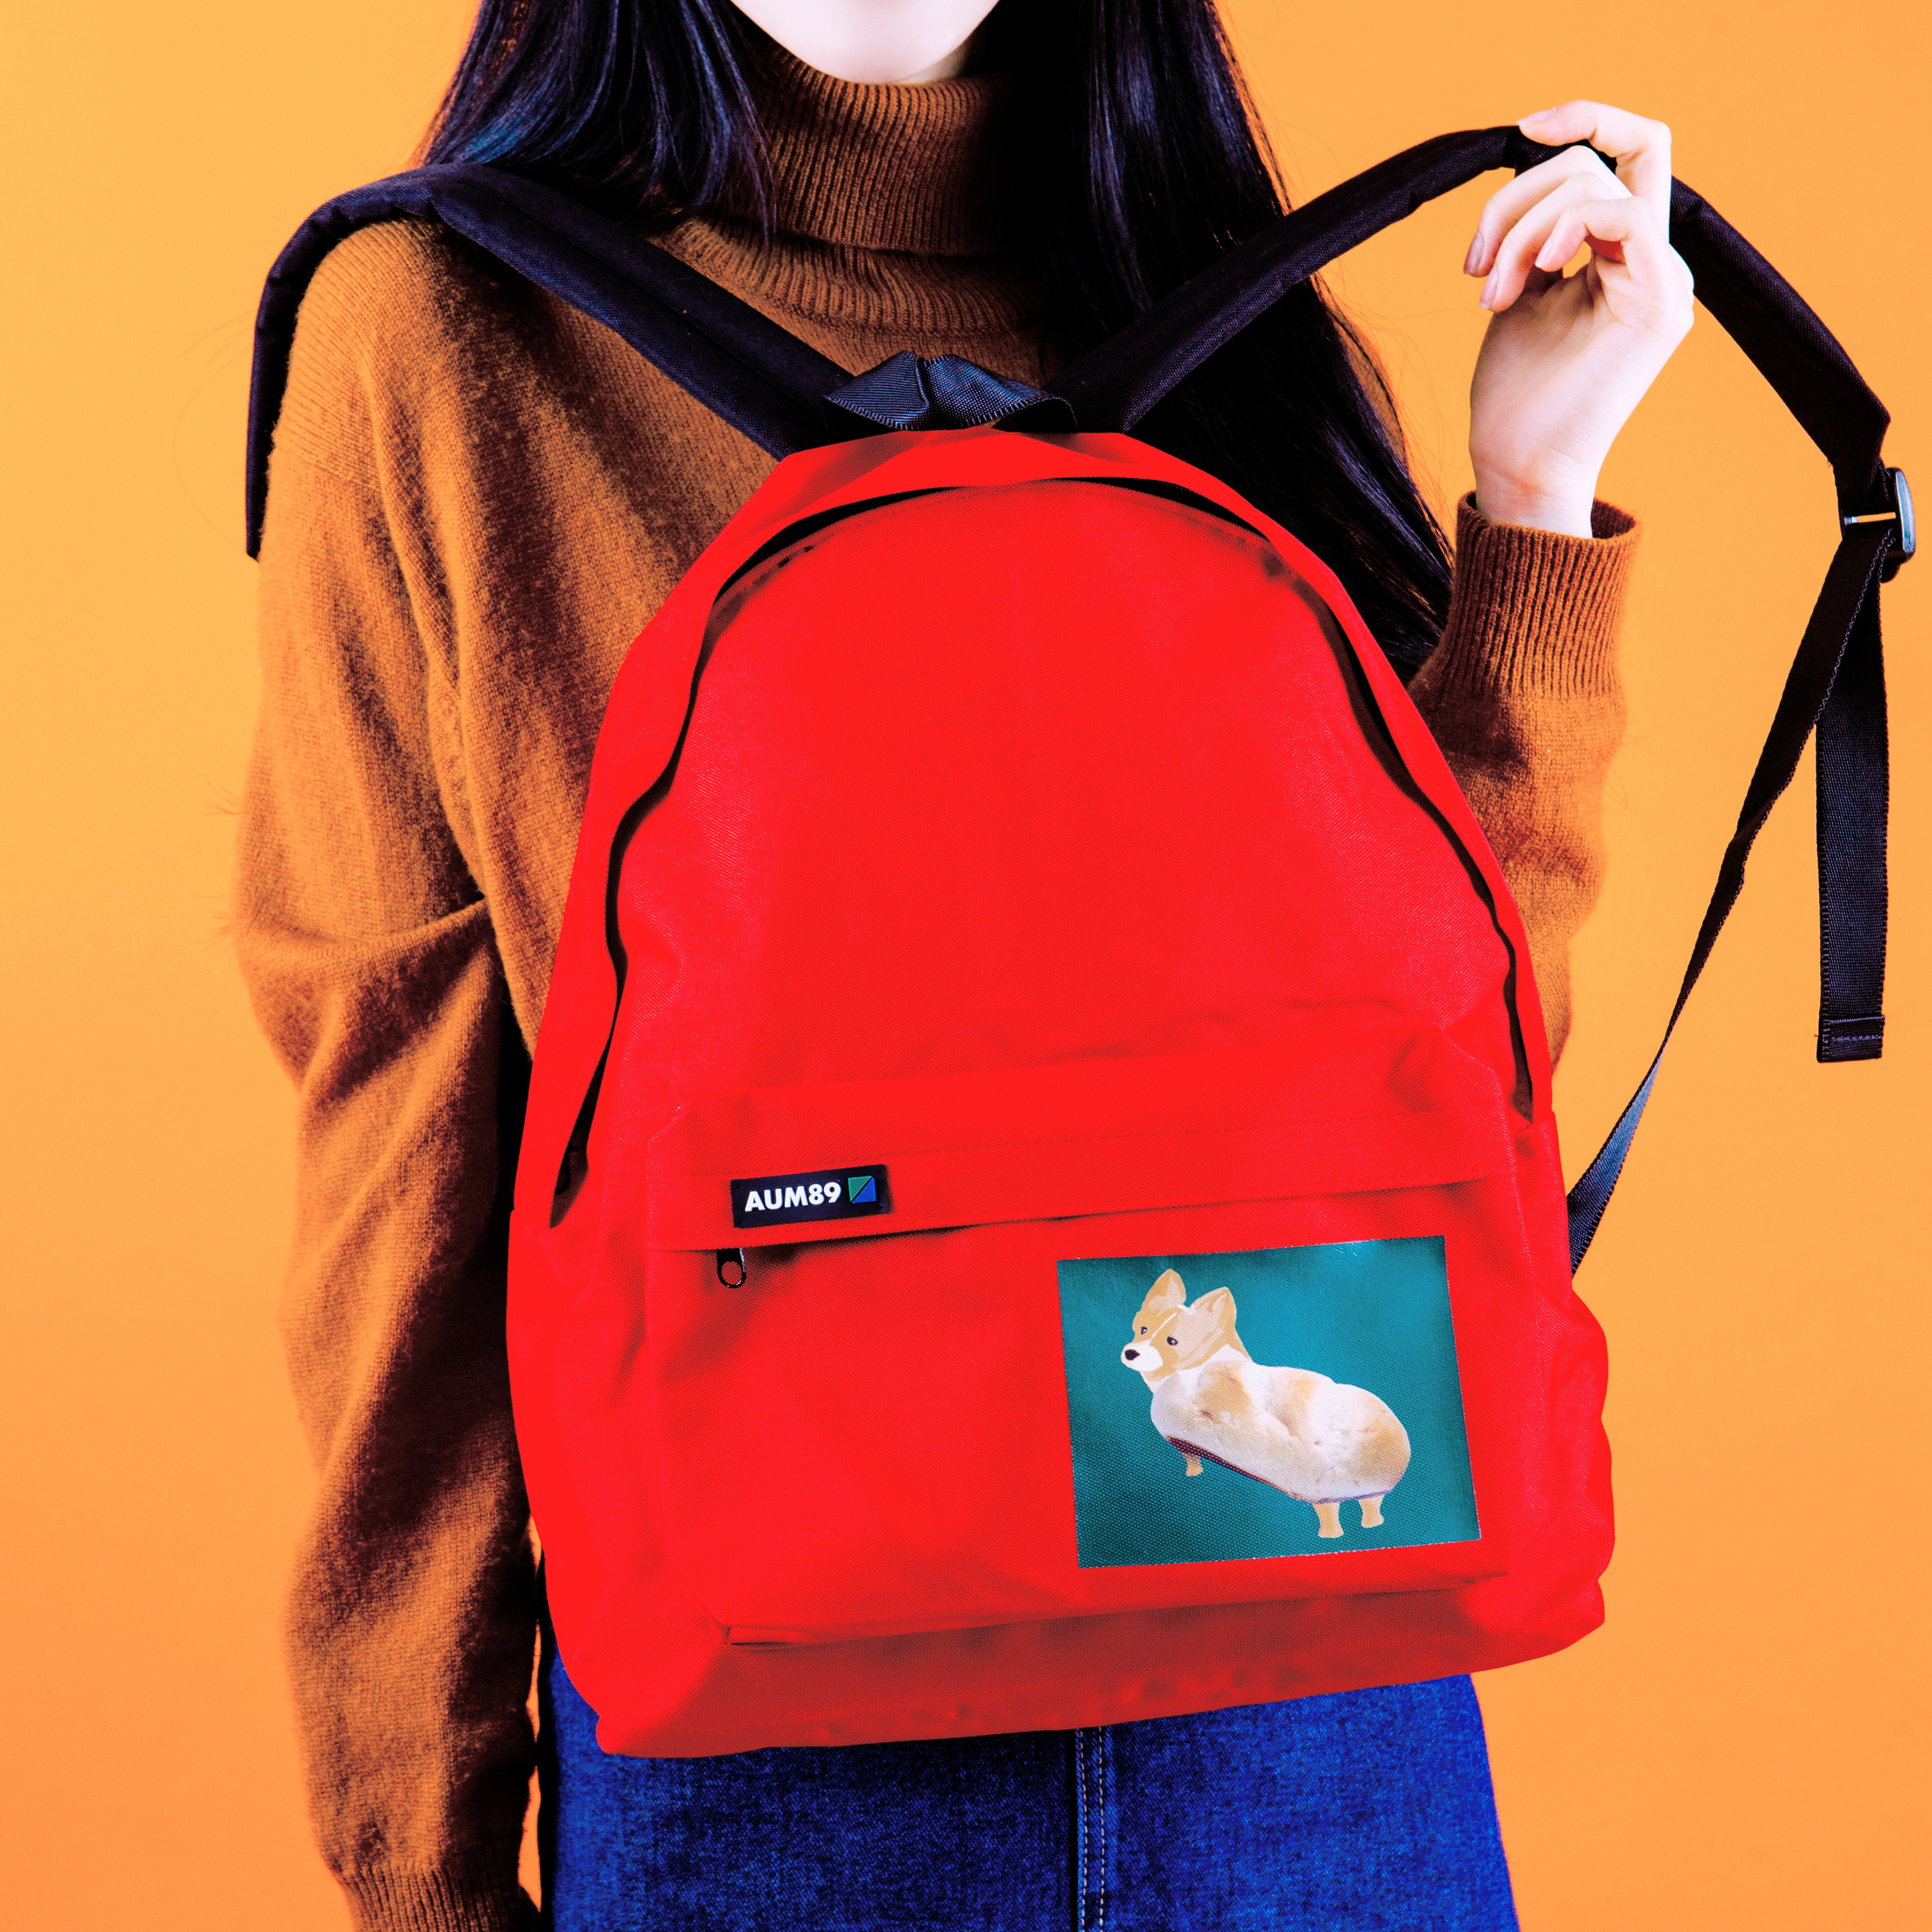 AUM89 MERIKER BACKPACK